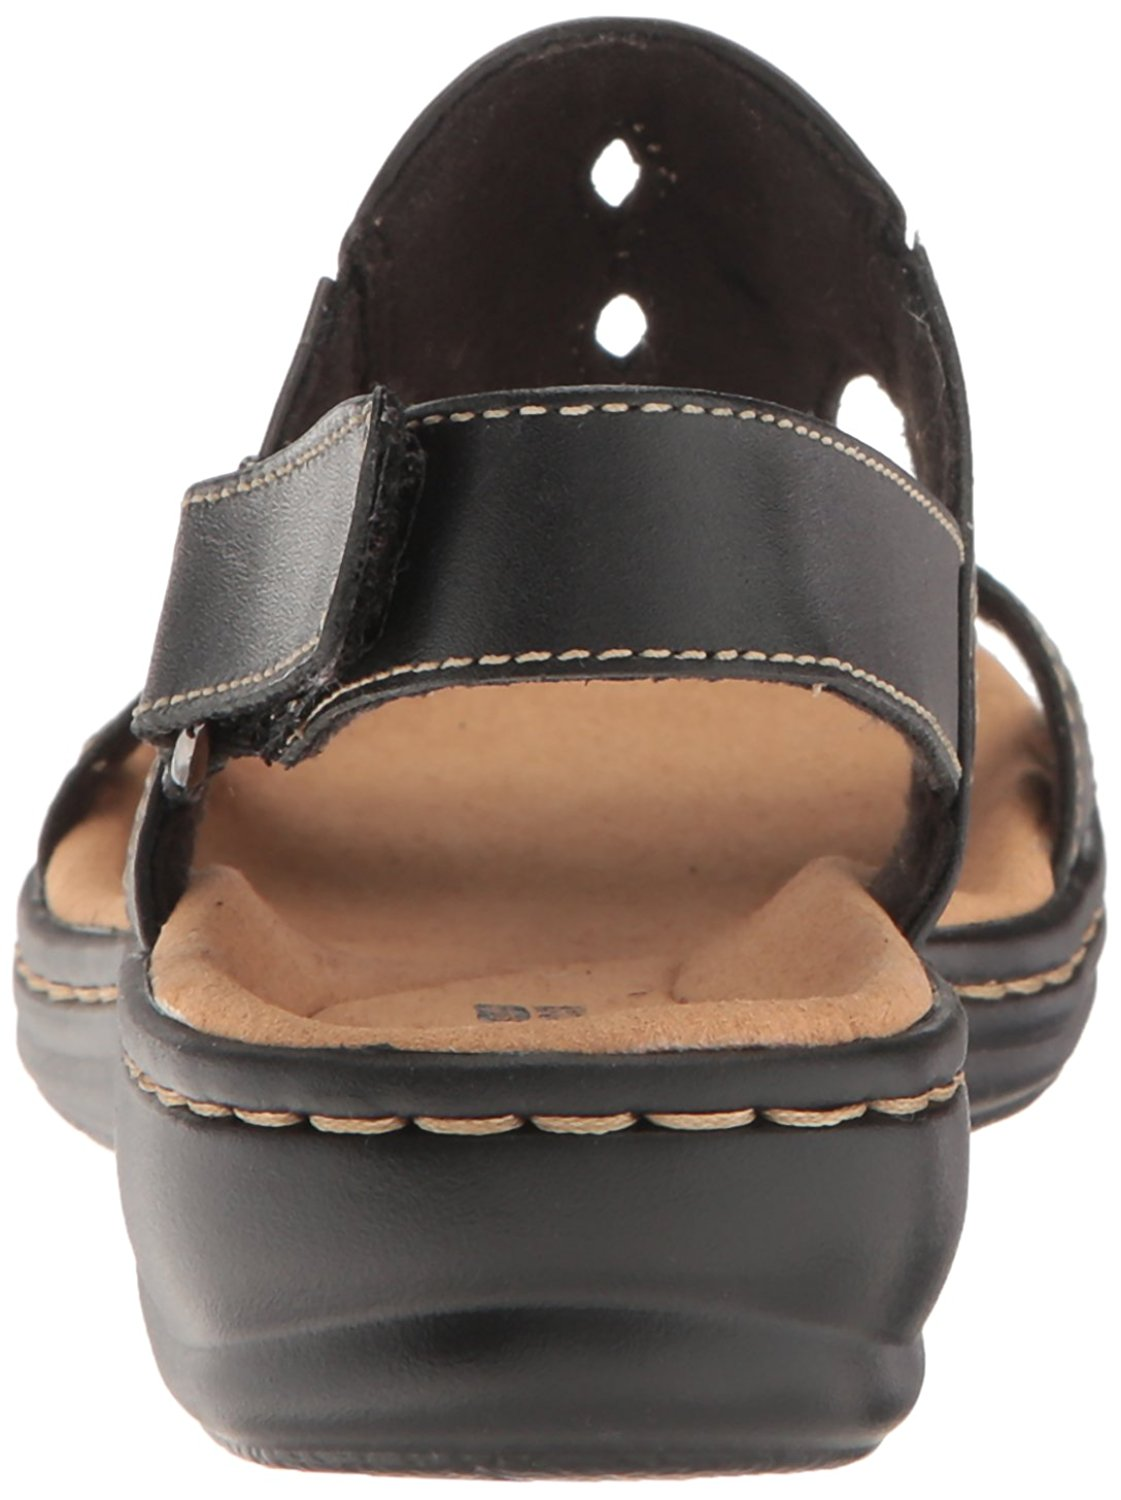 CLARKS Damenschuhe leisa Casual lakelyn Open Toe Casual leisa Ankle Strap Sandales 67cc25